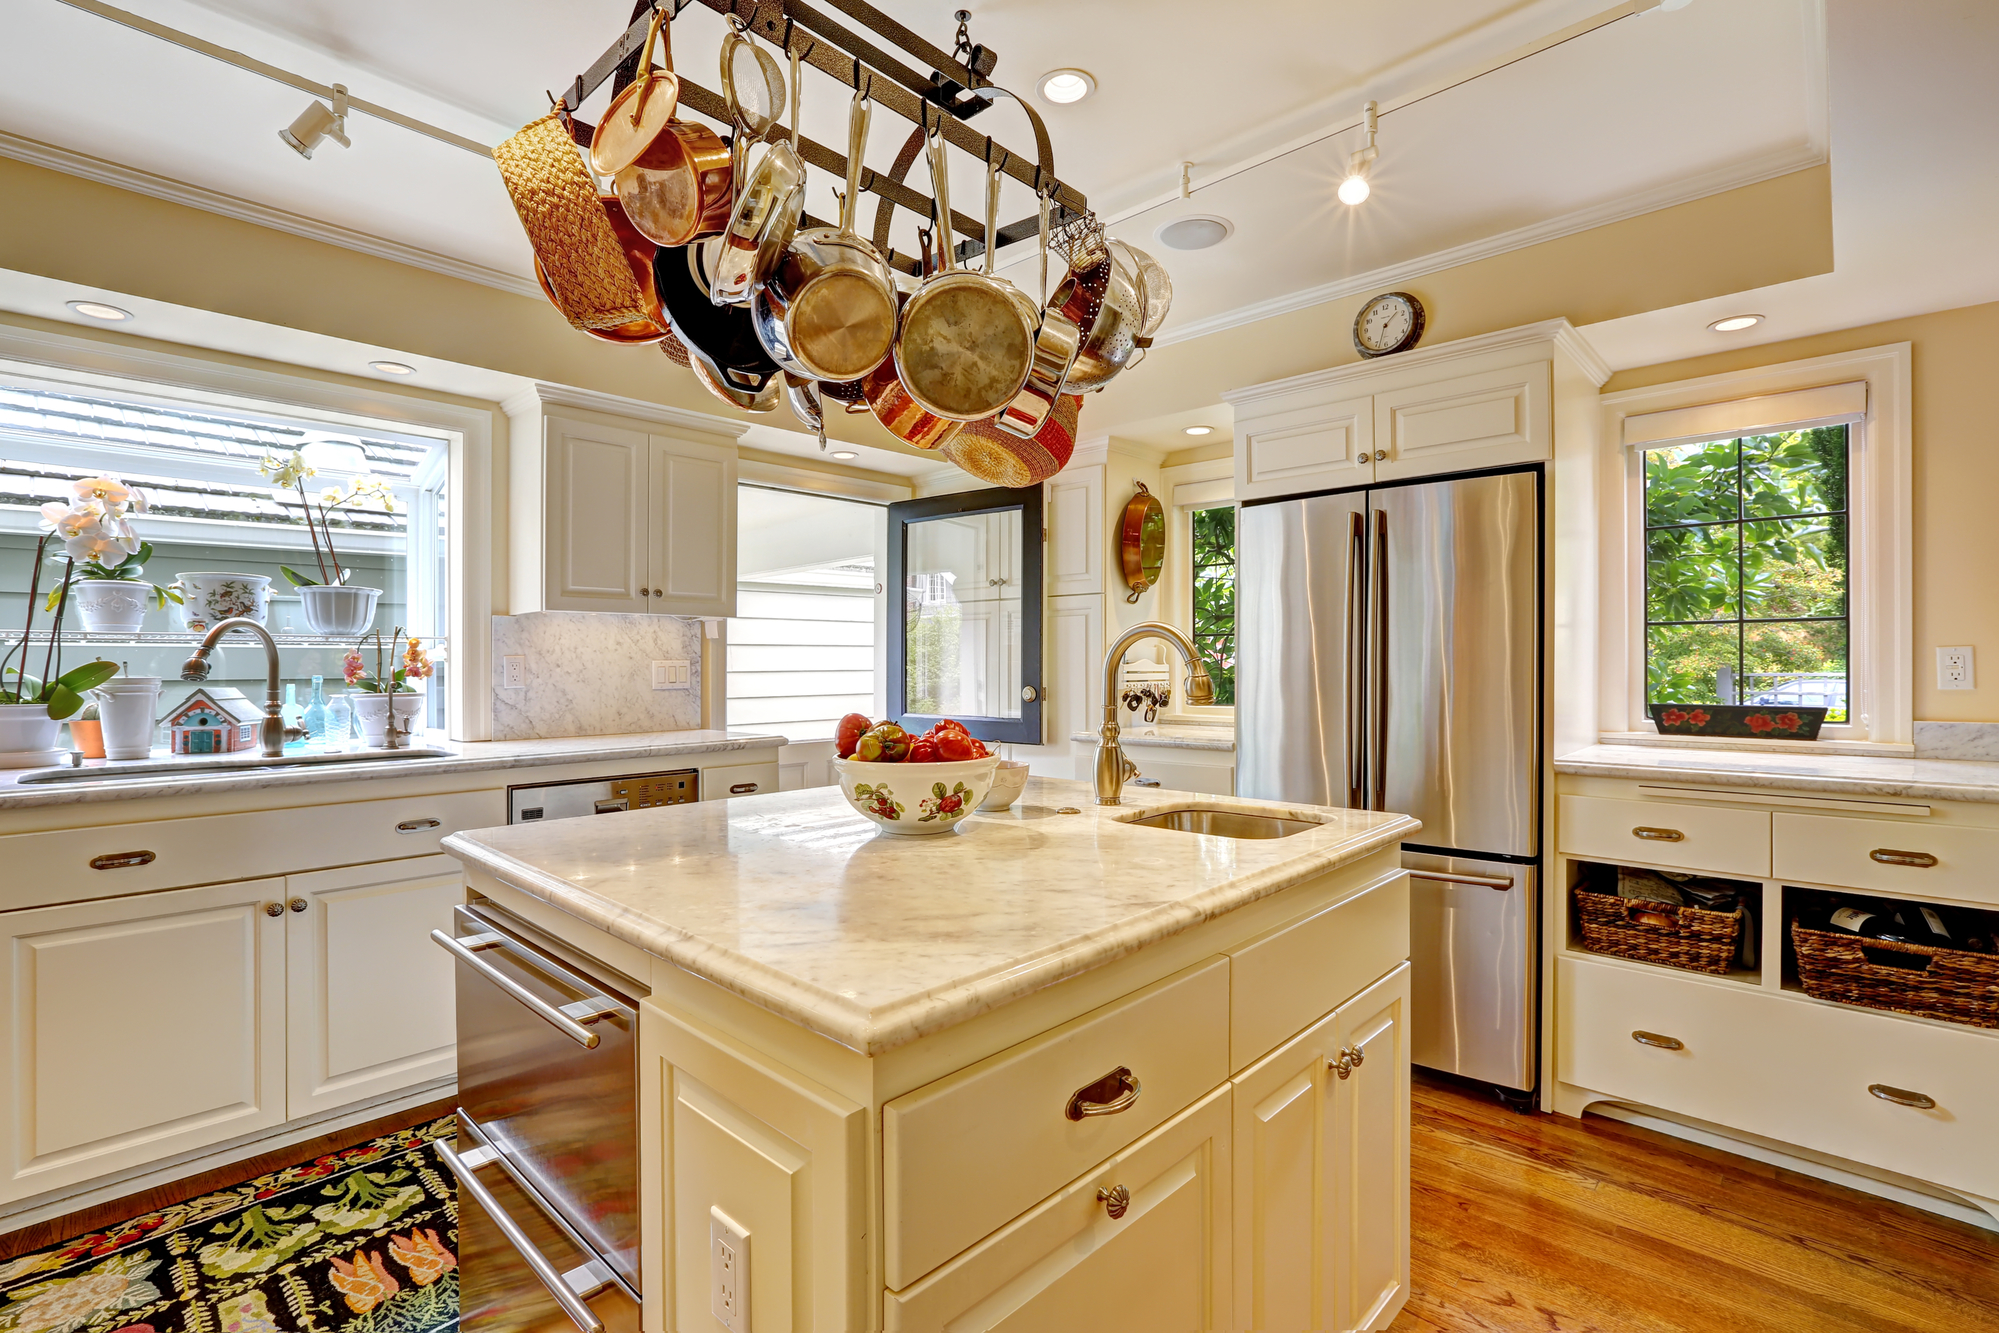 5 Kitchen Remodeling Ideas For A Small Space Henry S